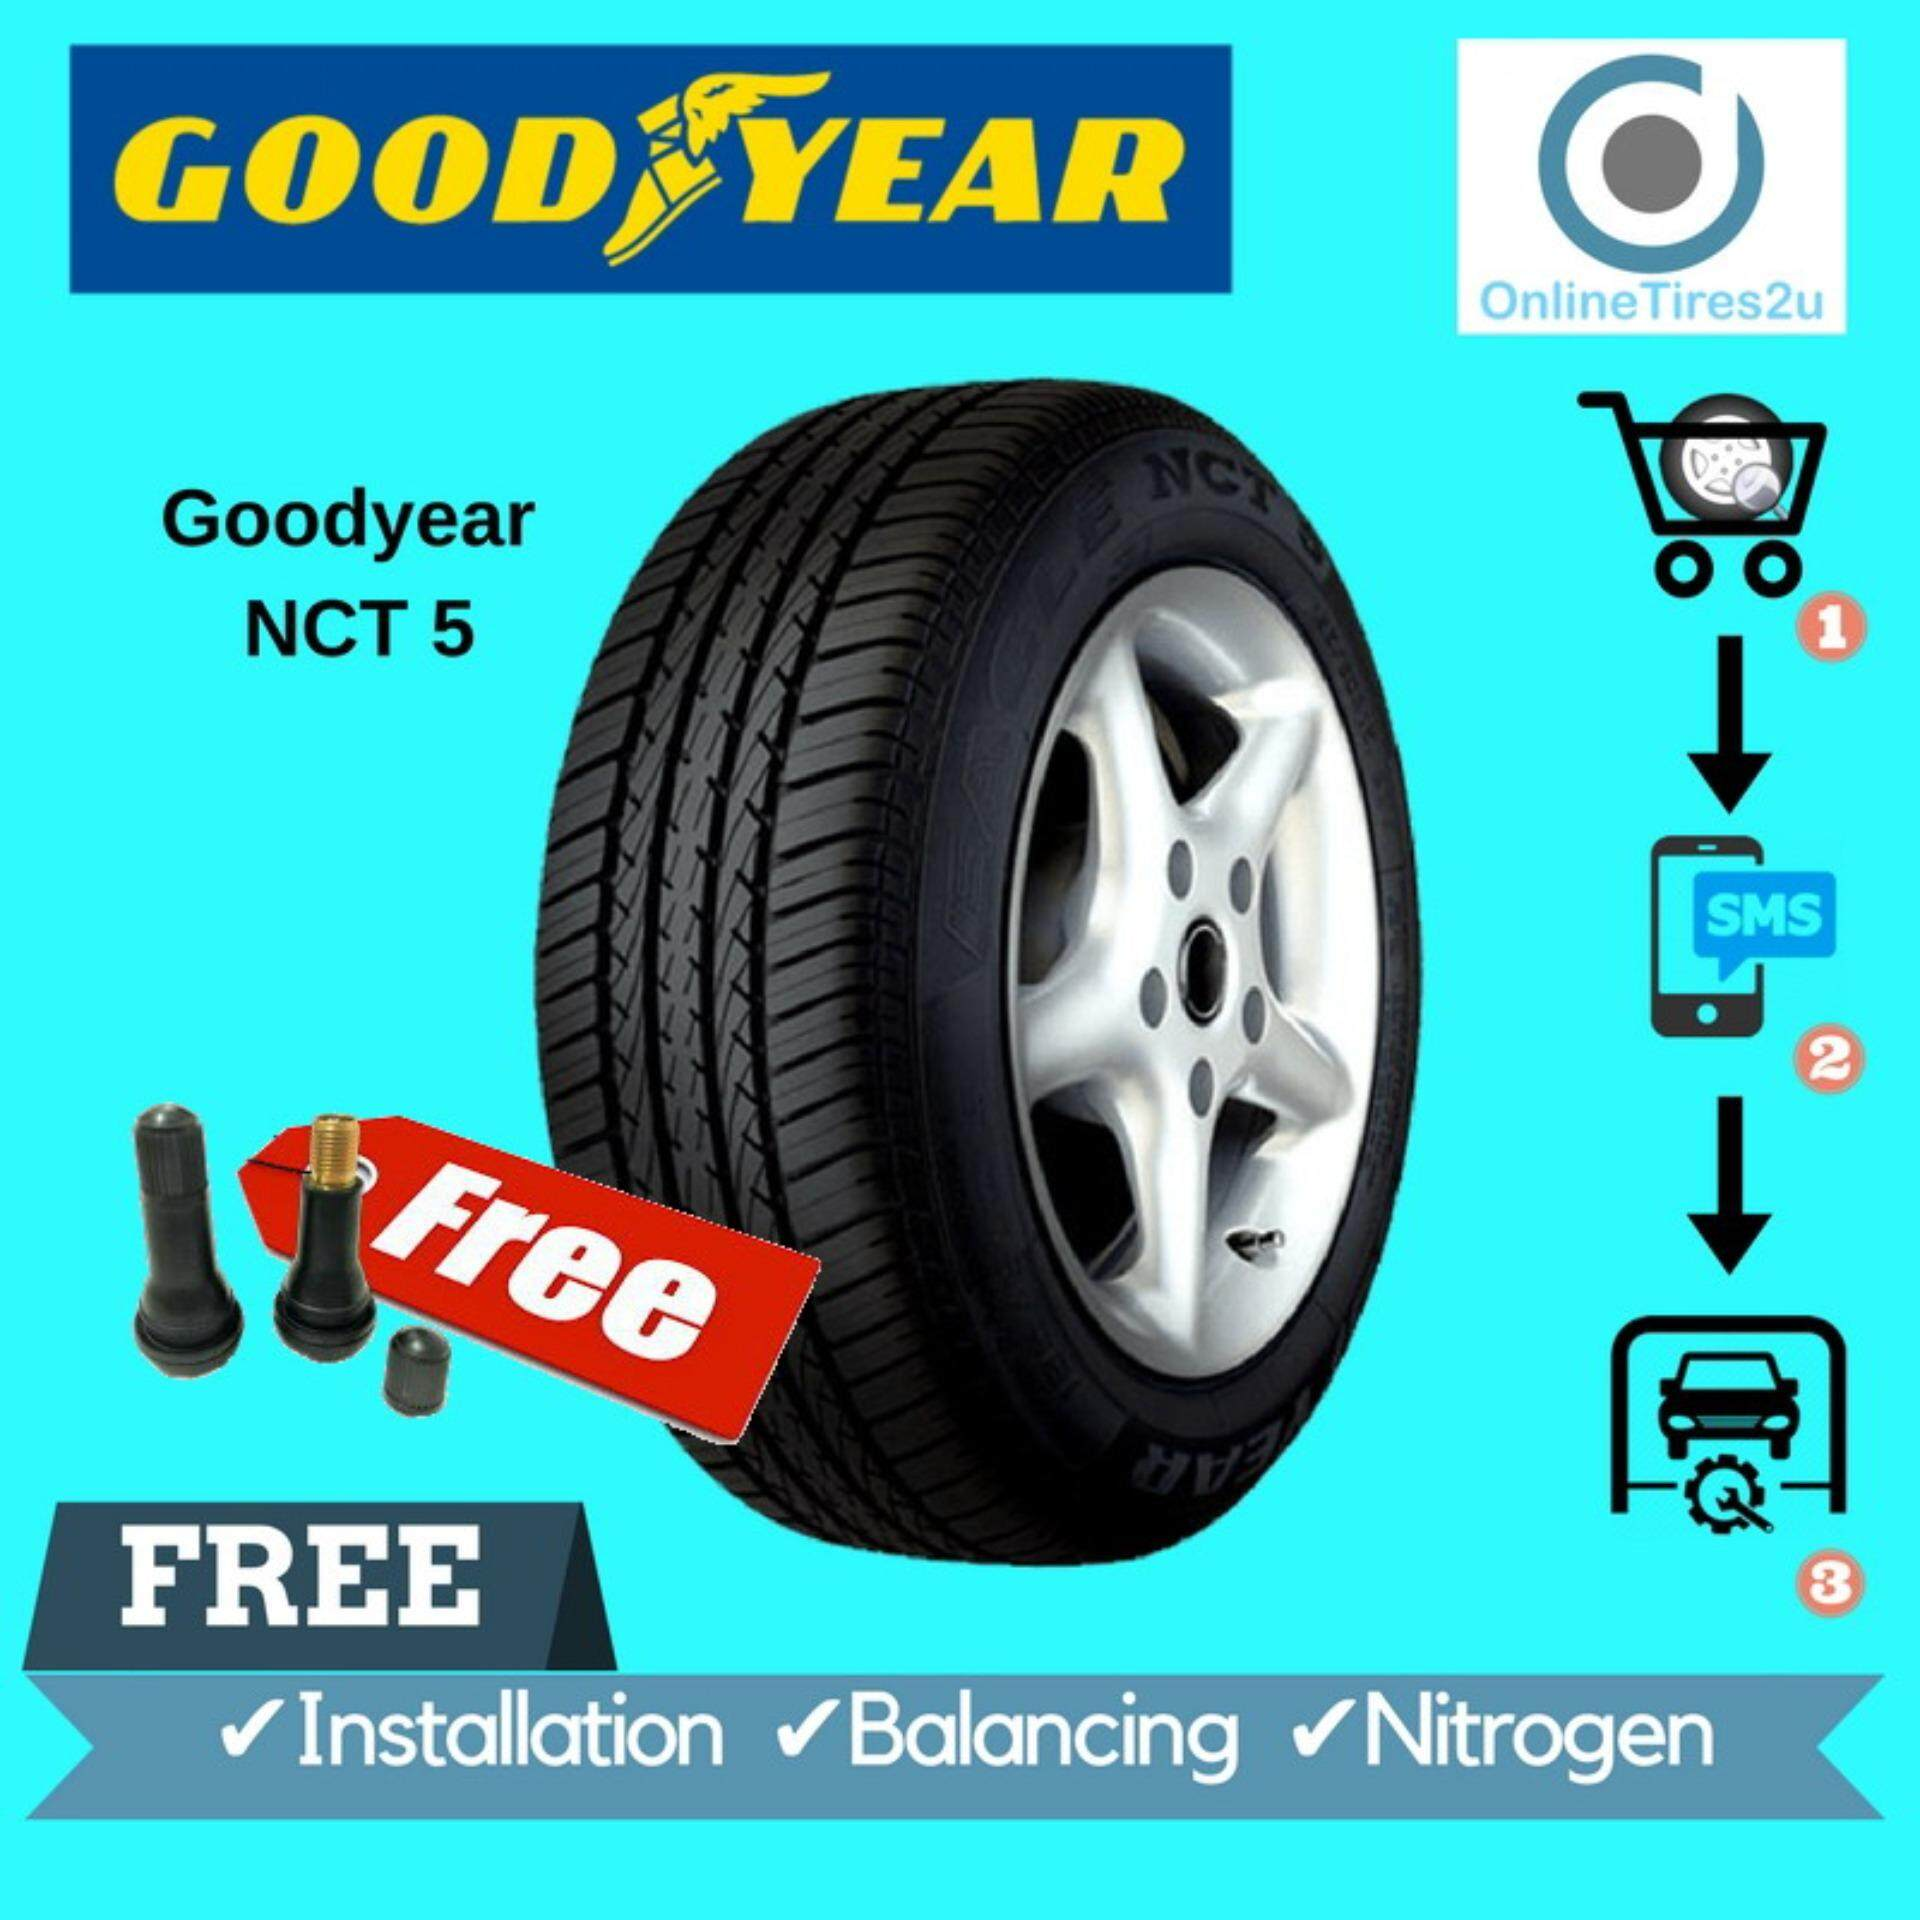 Goodyear Nct 5 - 175/65r14 (dot2018) (with Installation) By Onlinetires2u.